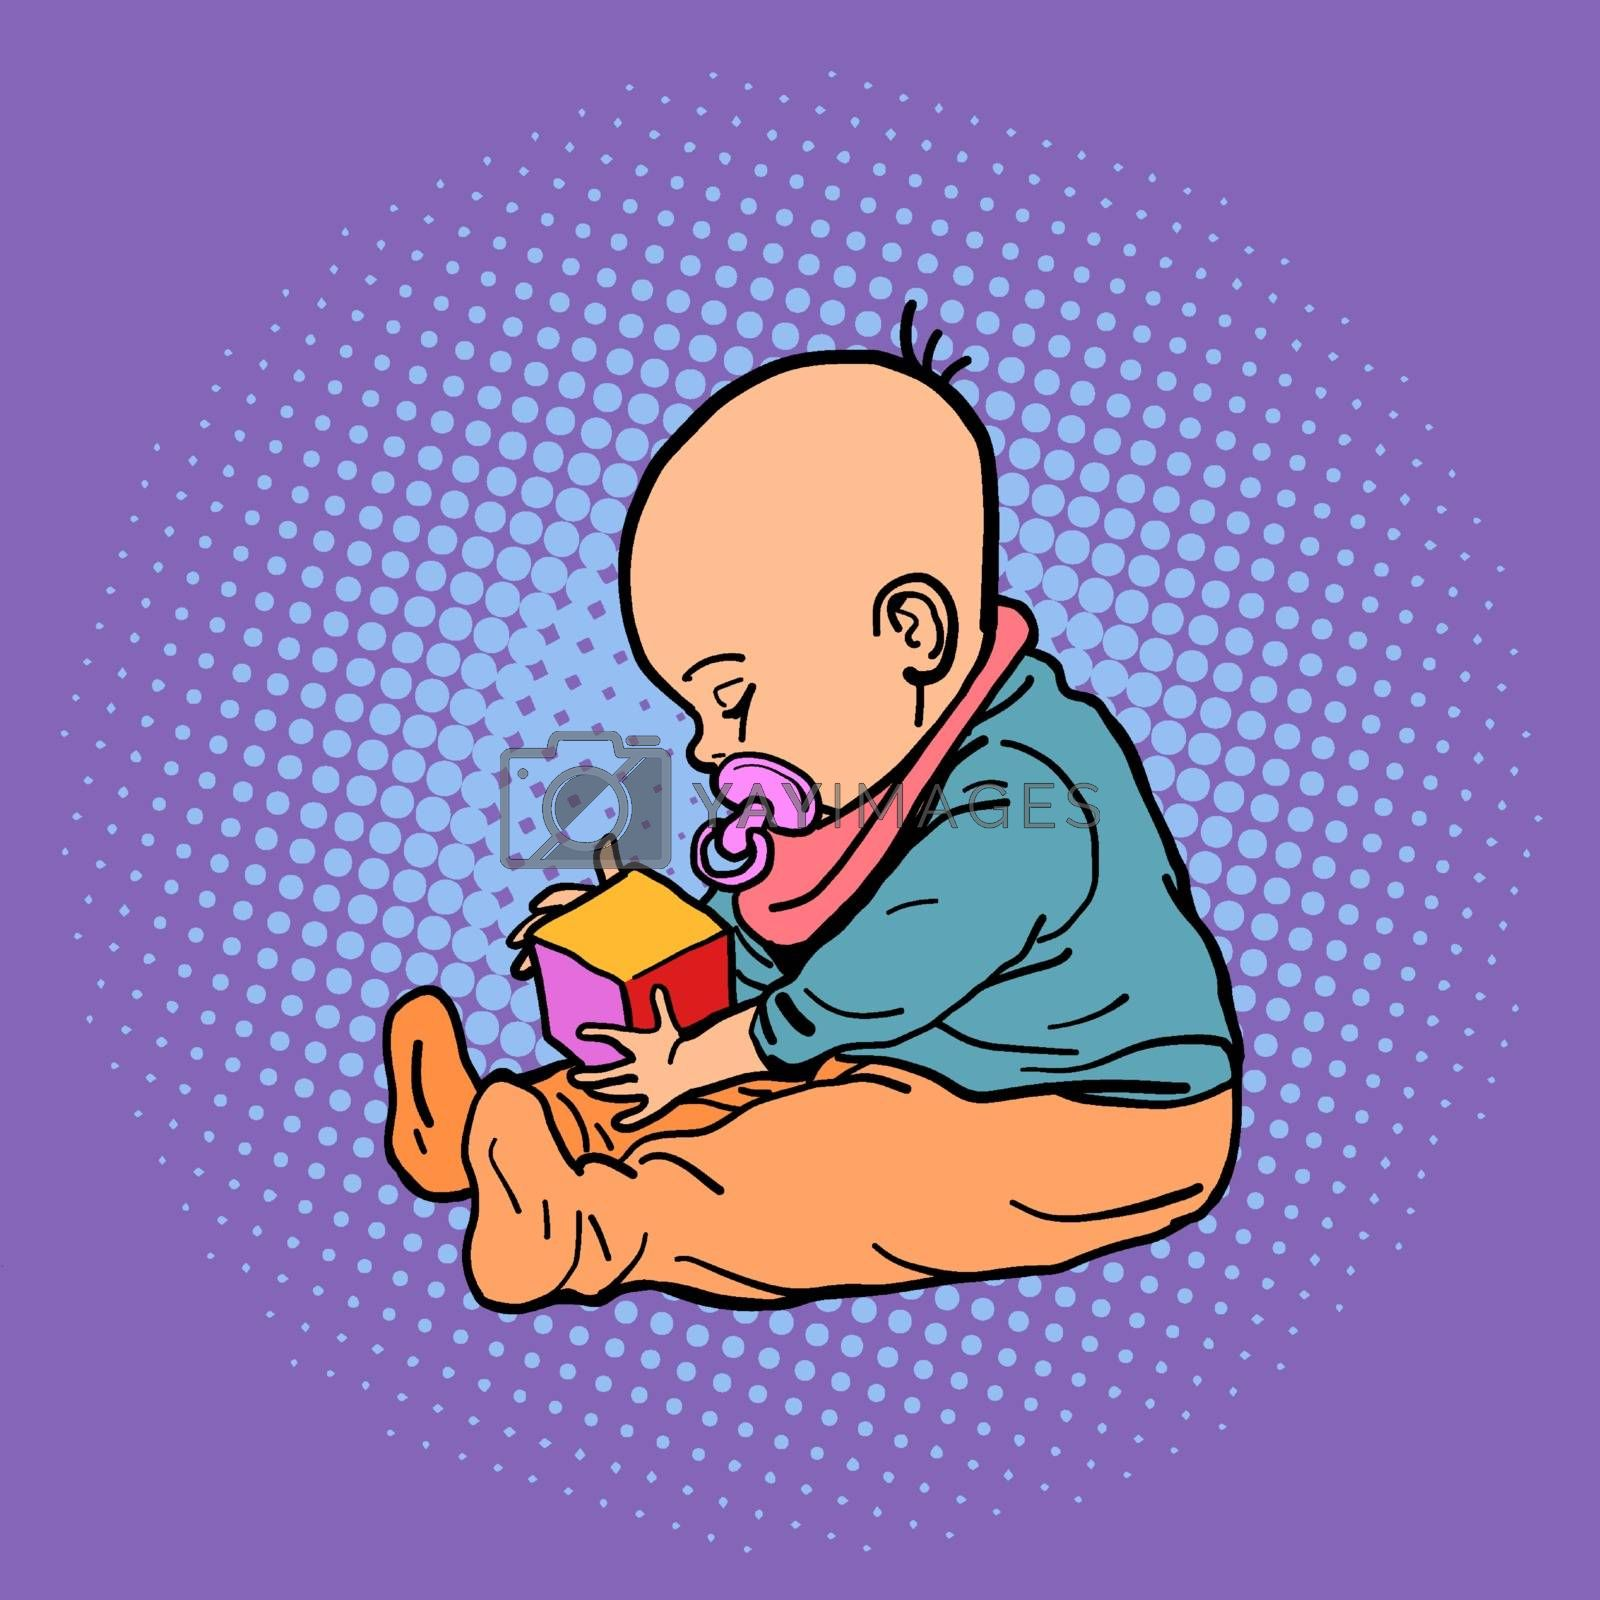 small child playing with a cube. Comic cartoon pop art retro vector illustration drawing